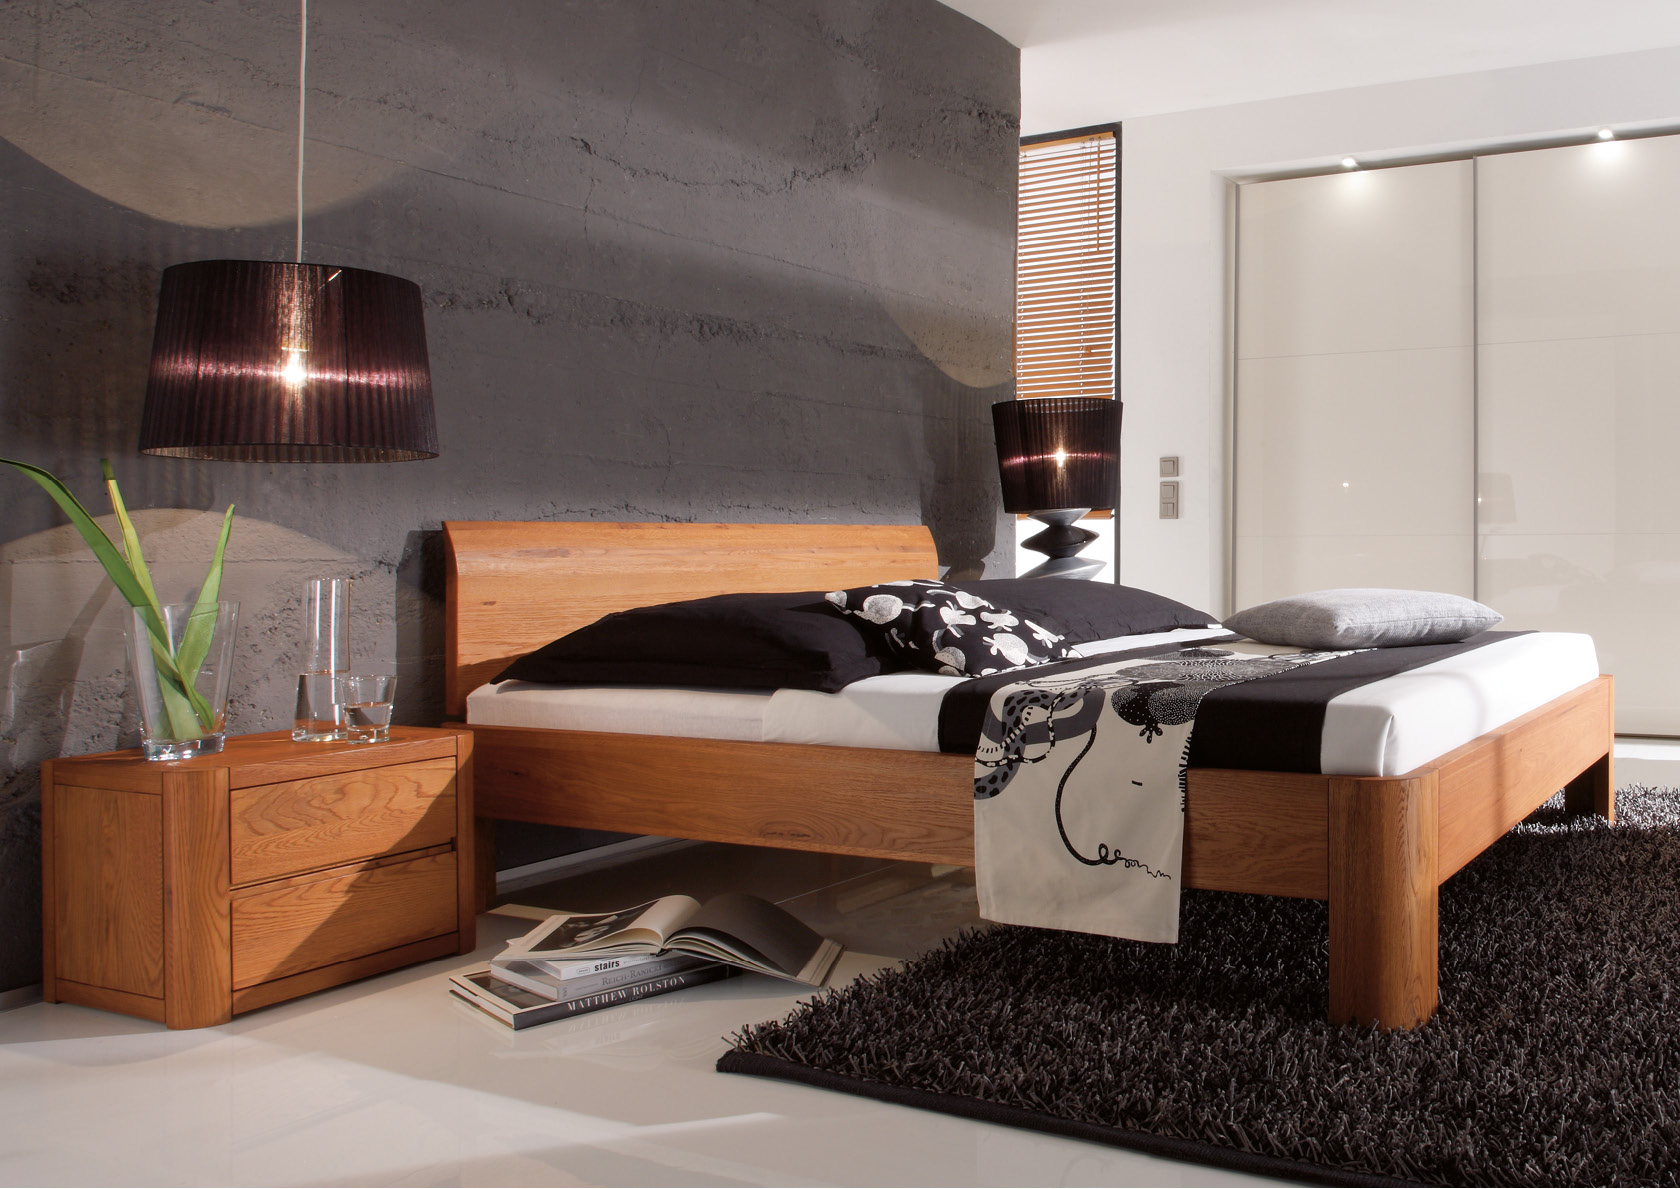 massivholzbett oak line betten thoba handels gmbh. Black Bedroom Furniture Sets. Home Design Ideas